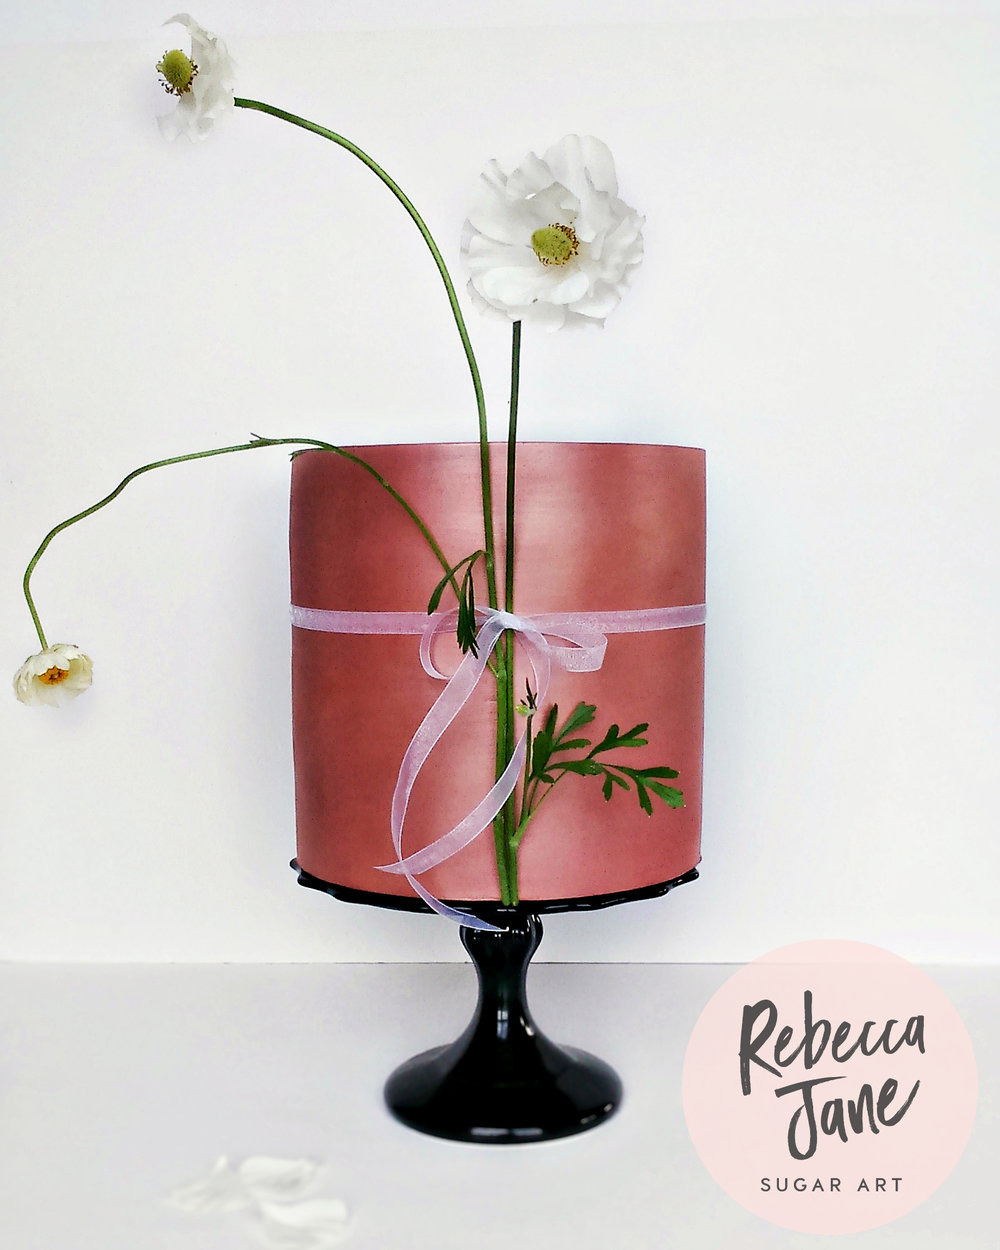 Rebecca Jane Sugar Art - Rose gold metallic cake with long stem ranunculus flowers